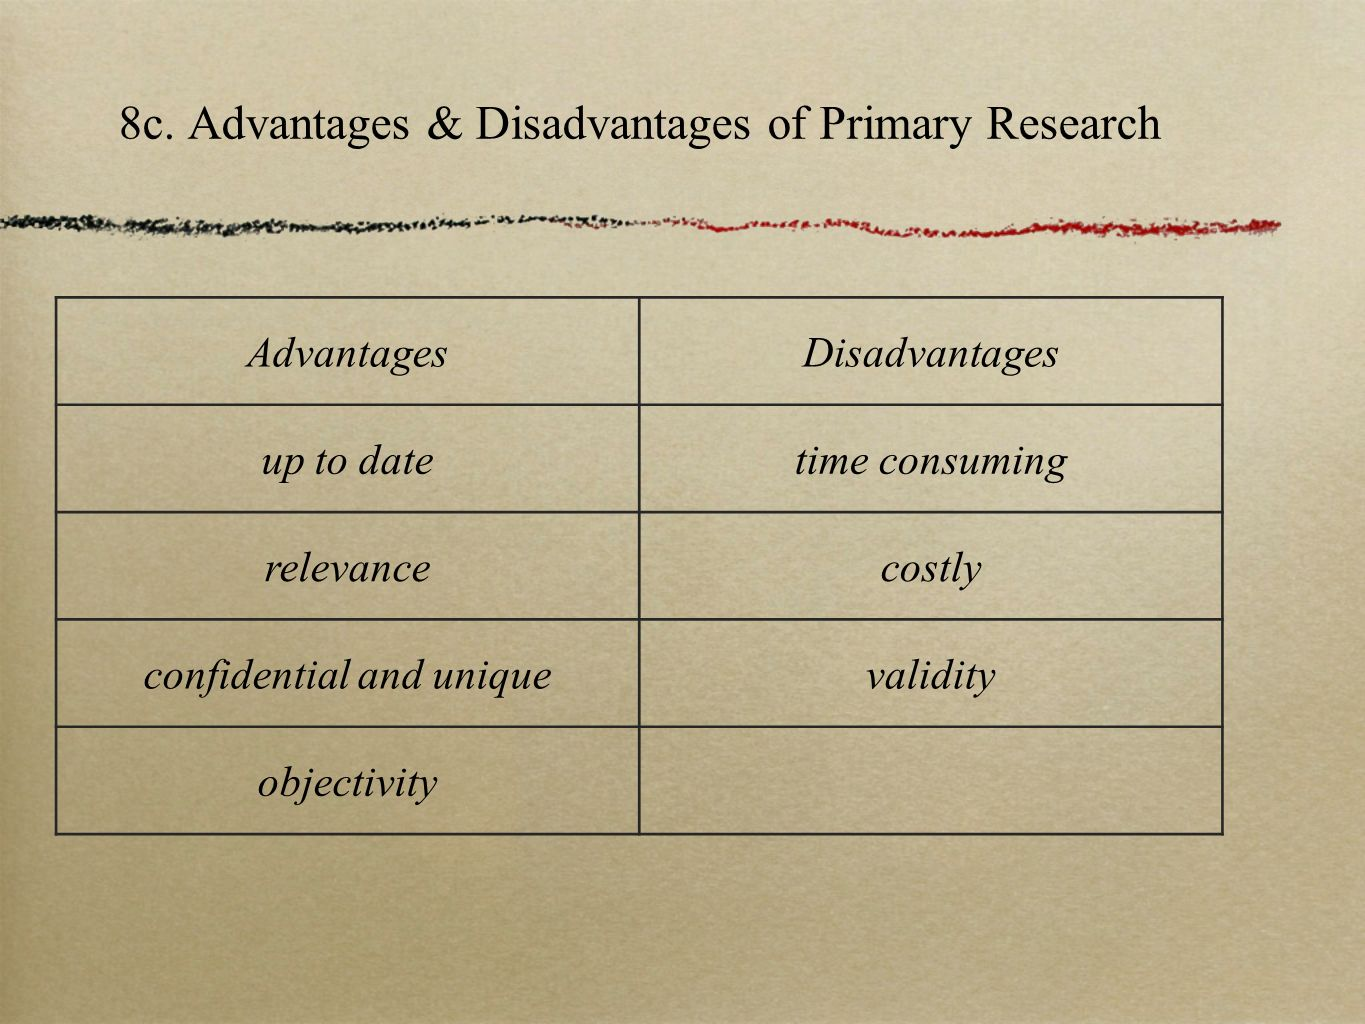 disadvantages of primary research Advantages of primary research (field research) are that itprovides data that's up to date, relevant and specific to yourproducts.